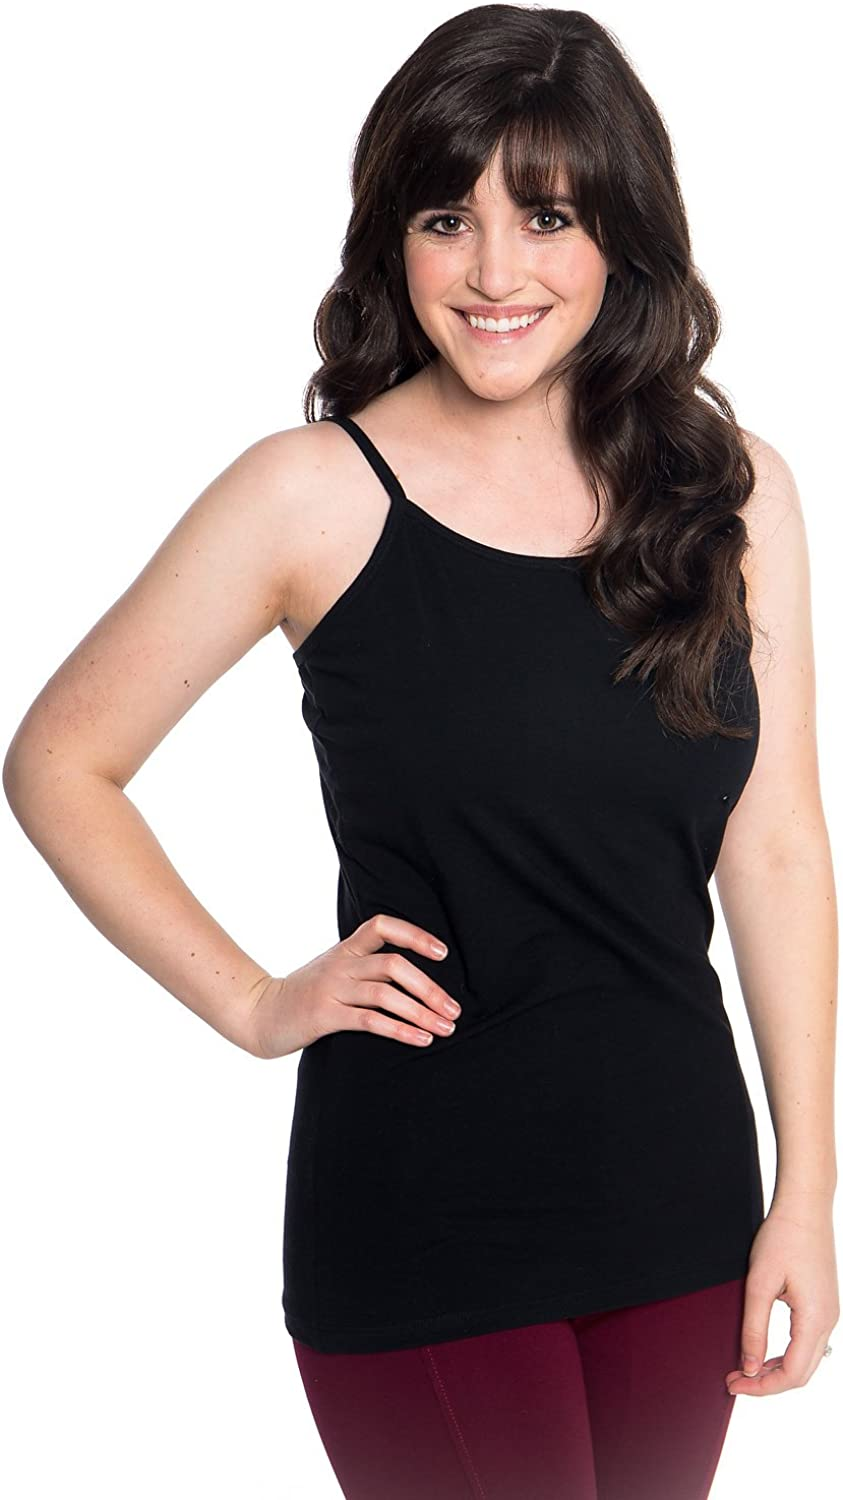 Heirloom Layering Cami Soft Yet Durable Neckline Now free shipping C Ranking TOP17 Extra Length